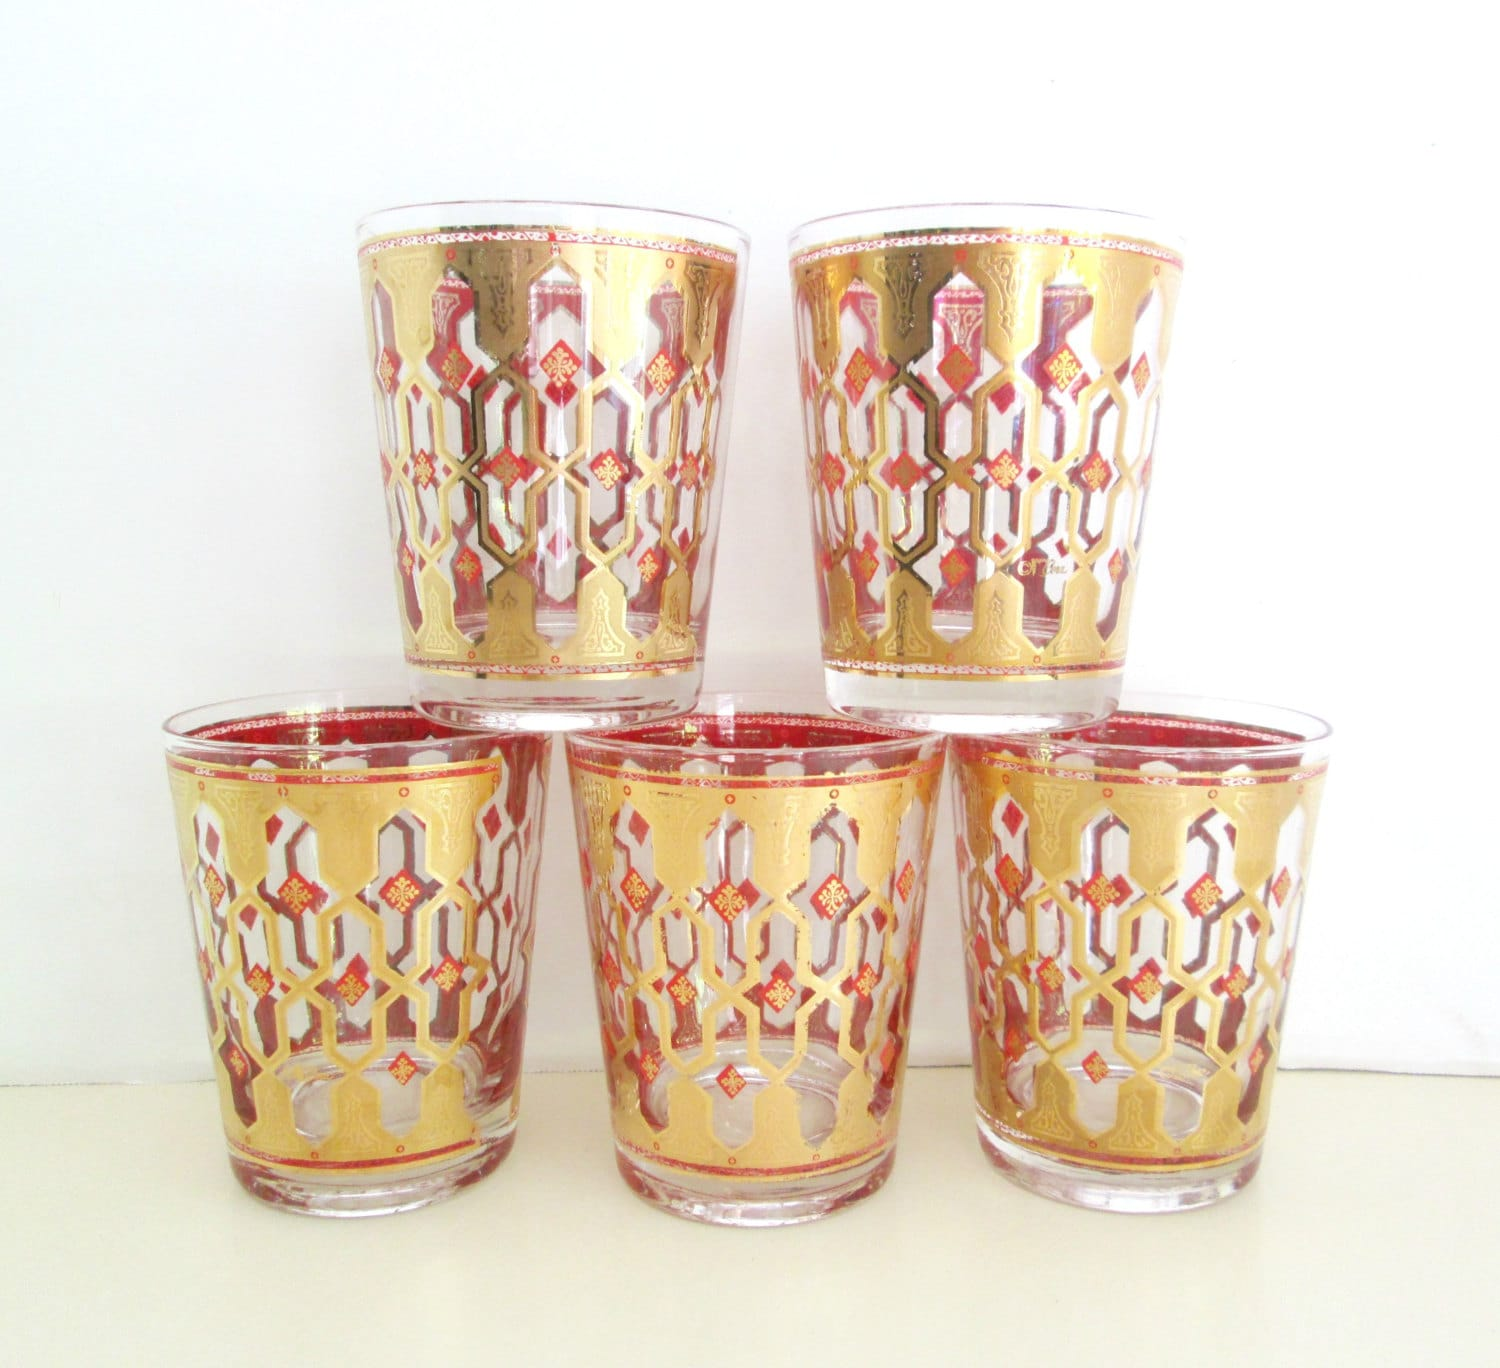 Vintage Fancy Barware Glassware Set Holiday Party Entertaining - looseendsvintage